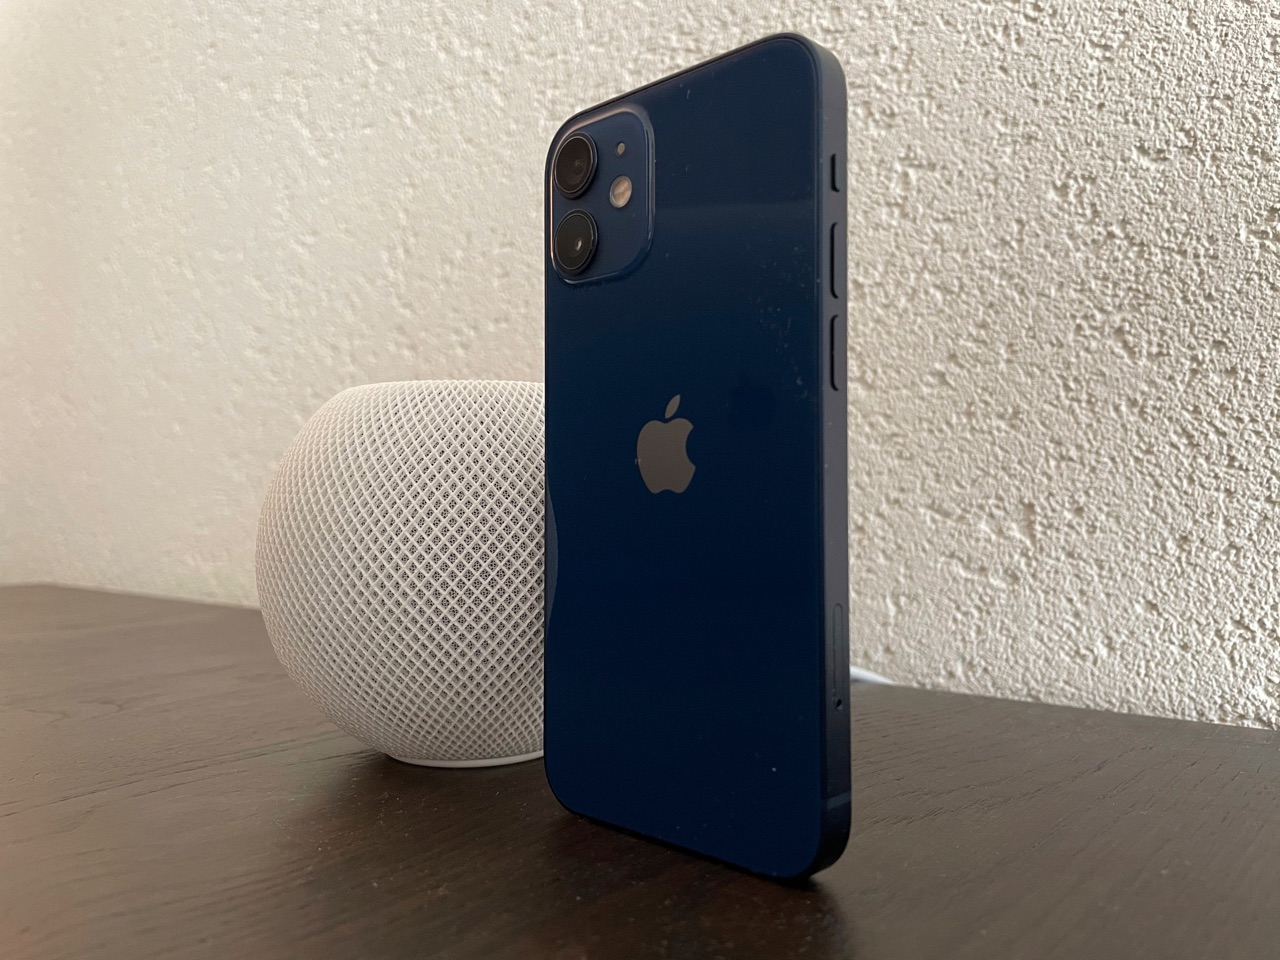 iPhone 12 mini review met HomePod mini.